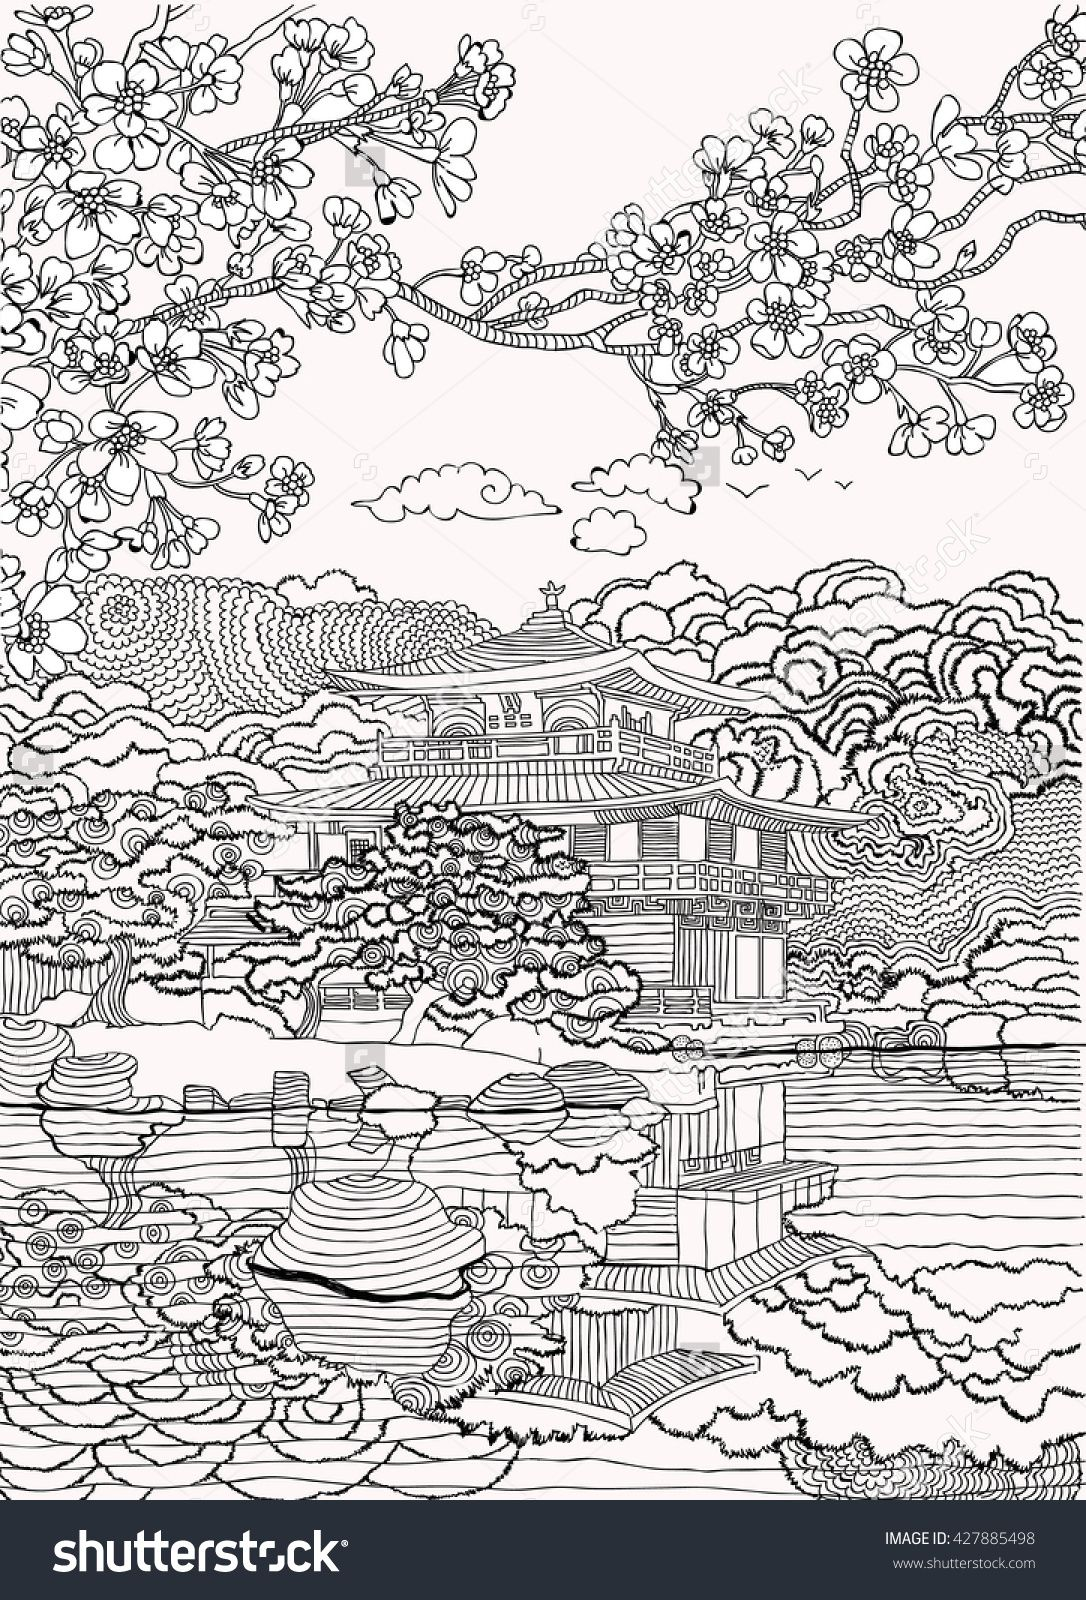 Japan coloring pages Shutterstock 427885498 Adult